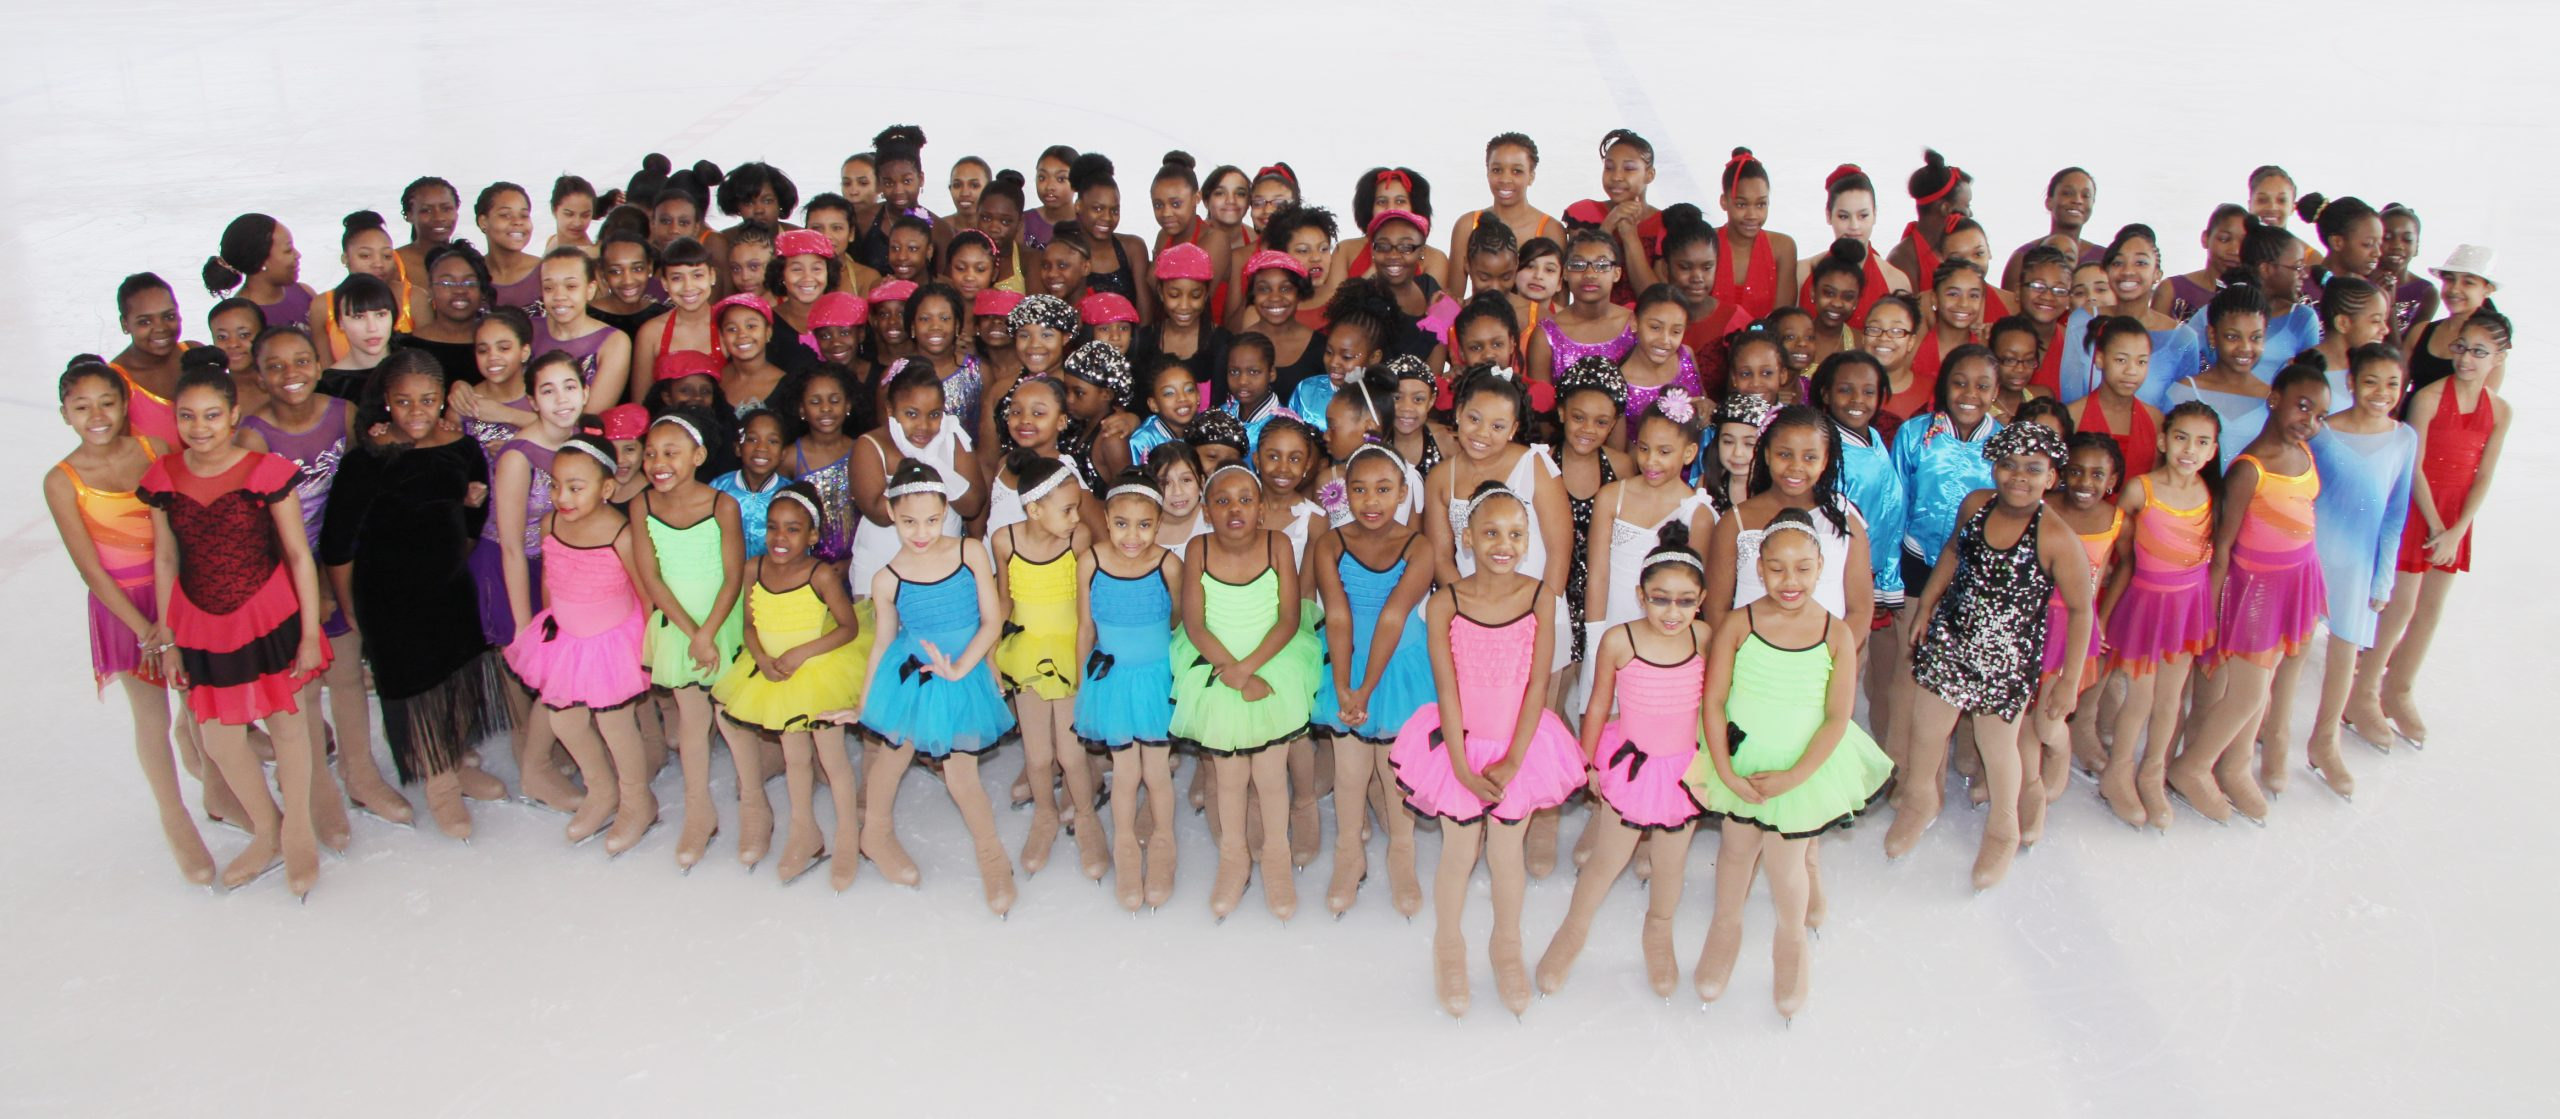 2013 Ice show group photo